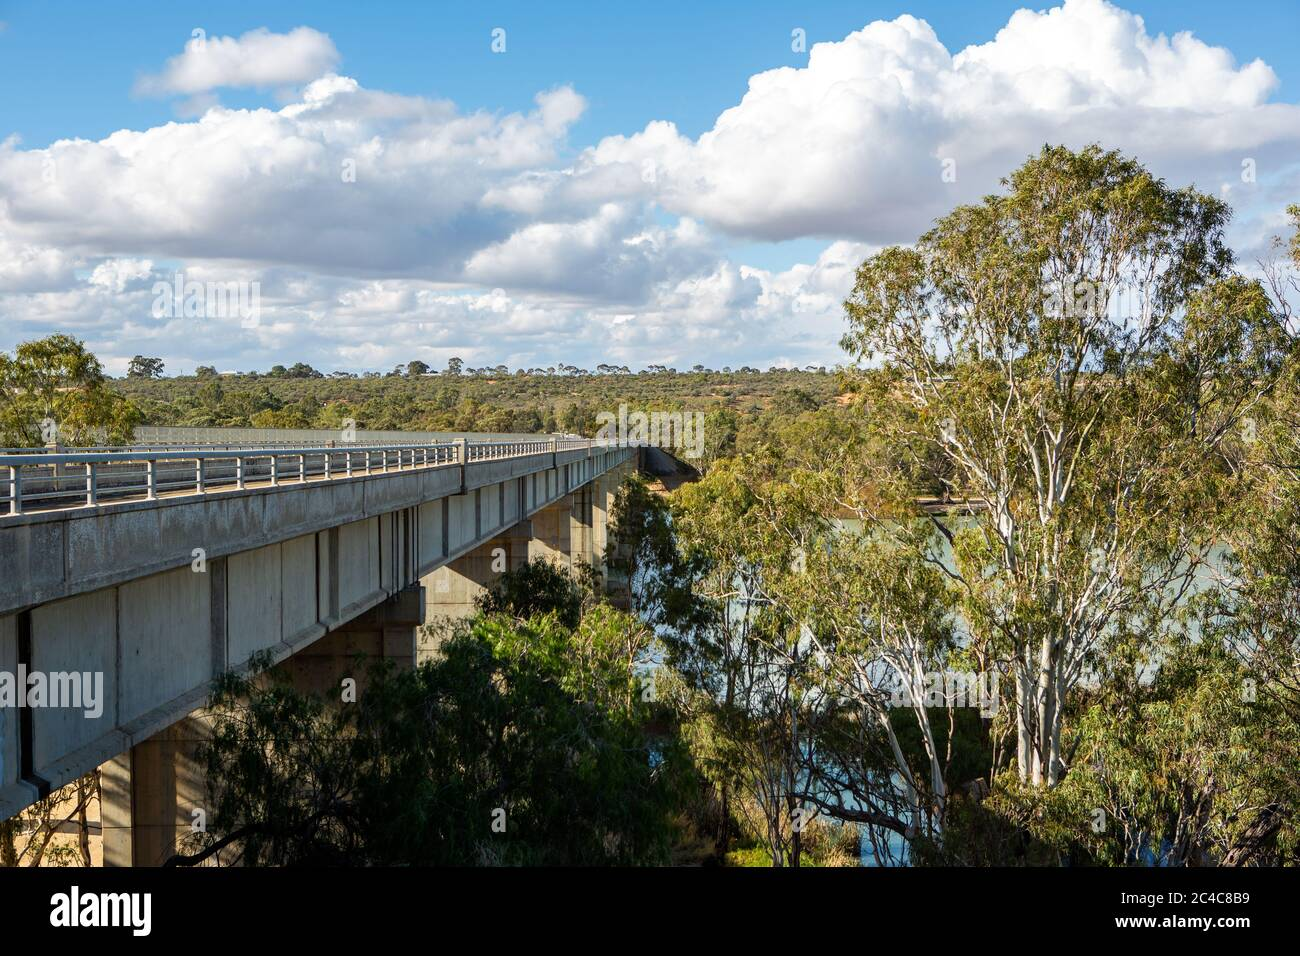 The historic old Blanchetown bridge crossing over the beautiful River Murray at Blanchetown in the riverland South Australia on the 20th June 2020 Stock Photo